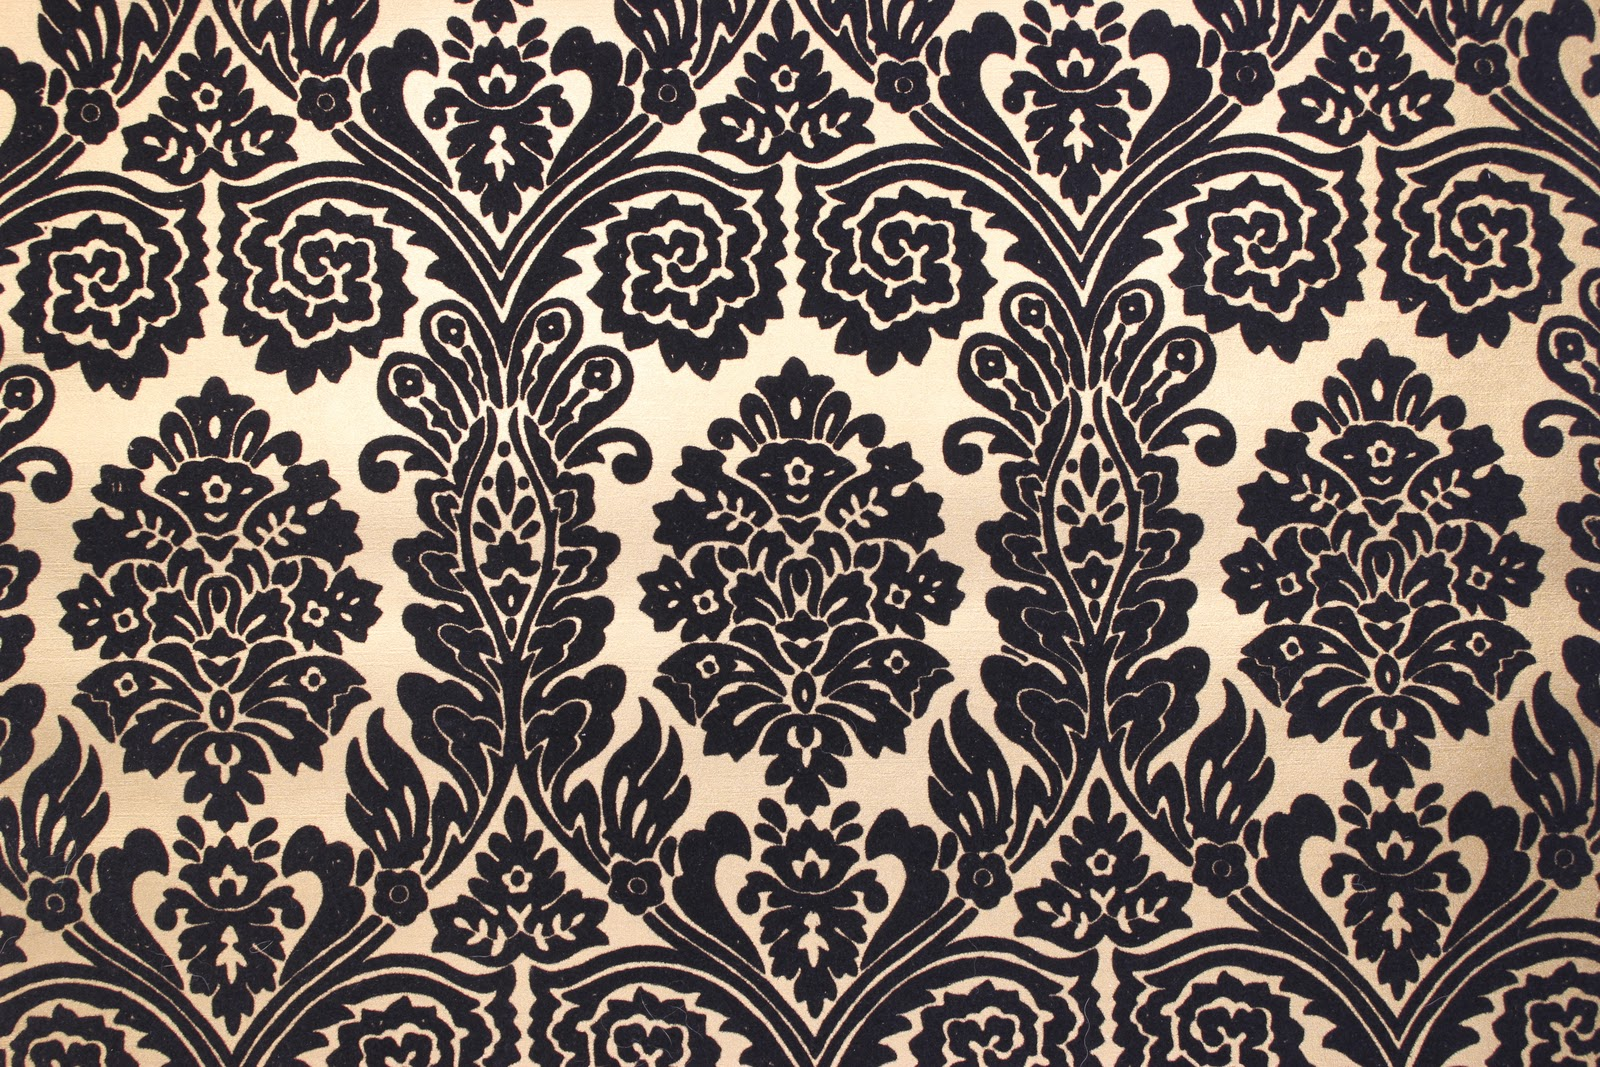 vintage pattern backgrounds - photo #19